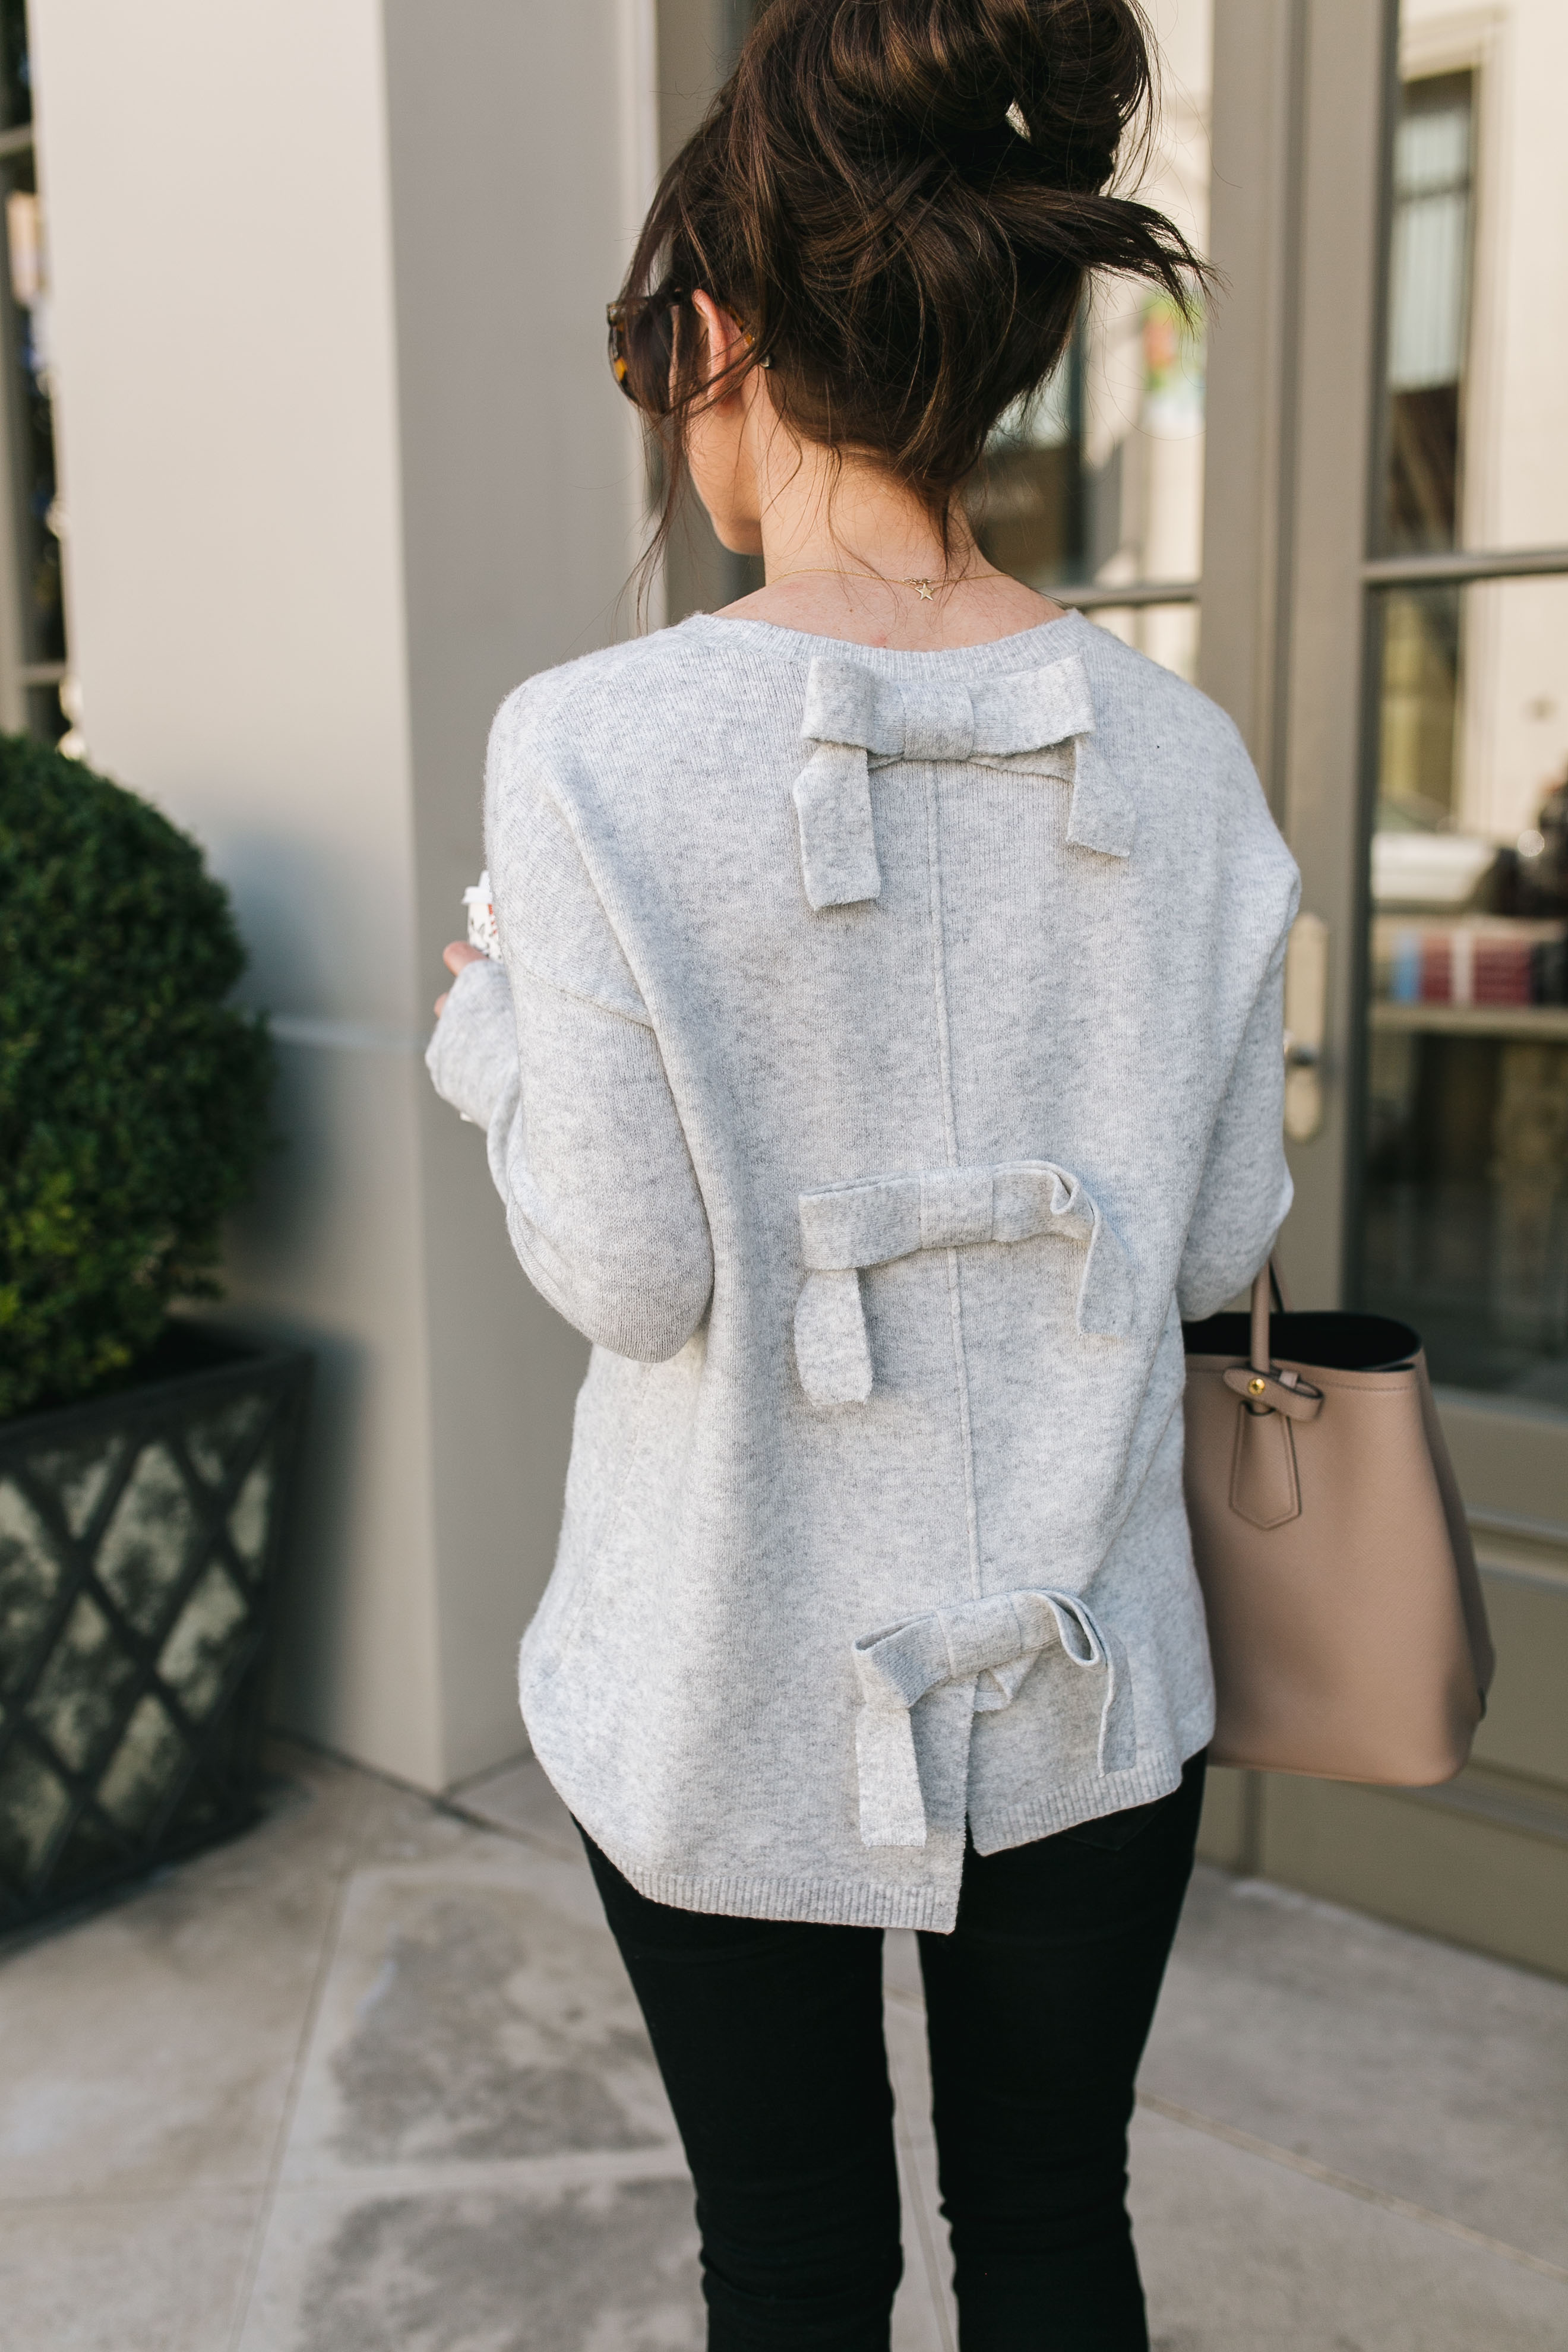 Style blogger Daryl-Ann Denner wears a bow back sweater from Nordstrom, black ripped skinny jeans from Abercrombie & Fitch, a nude Prada bag, black leather booties and a hot chocolate in a Starbucks holiday cup.